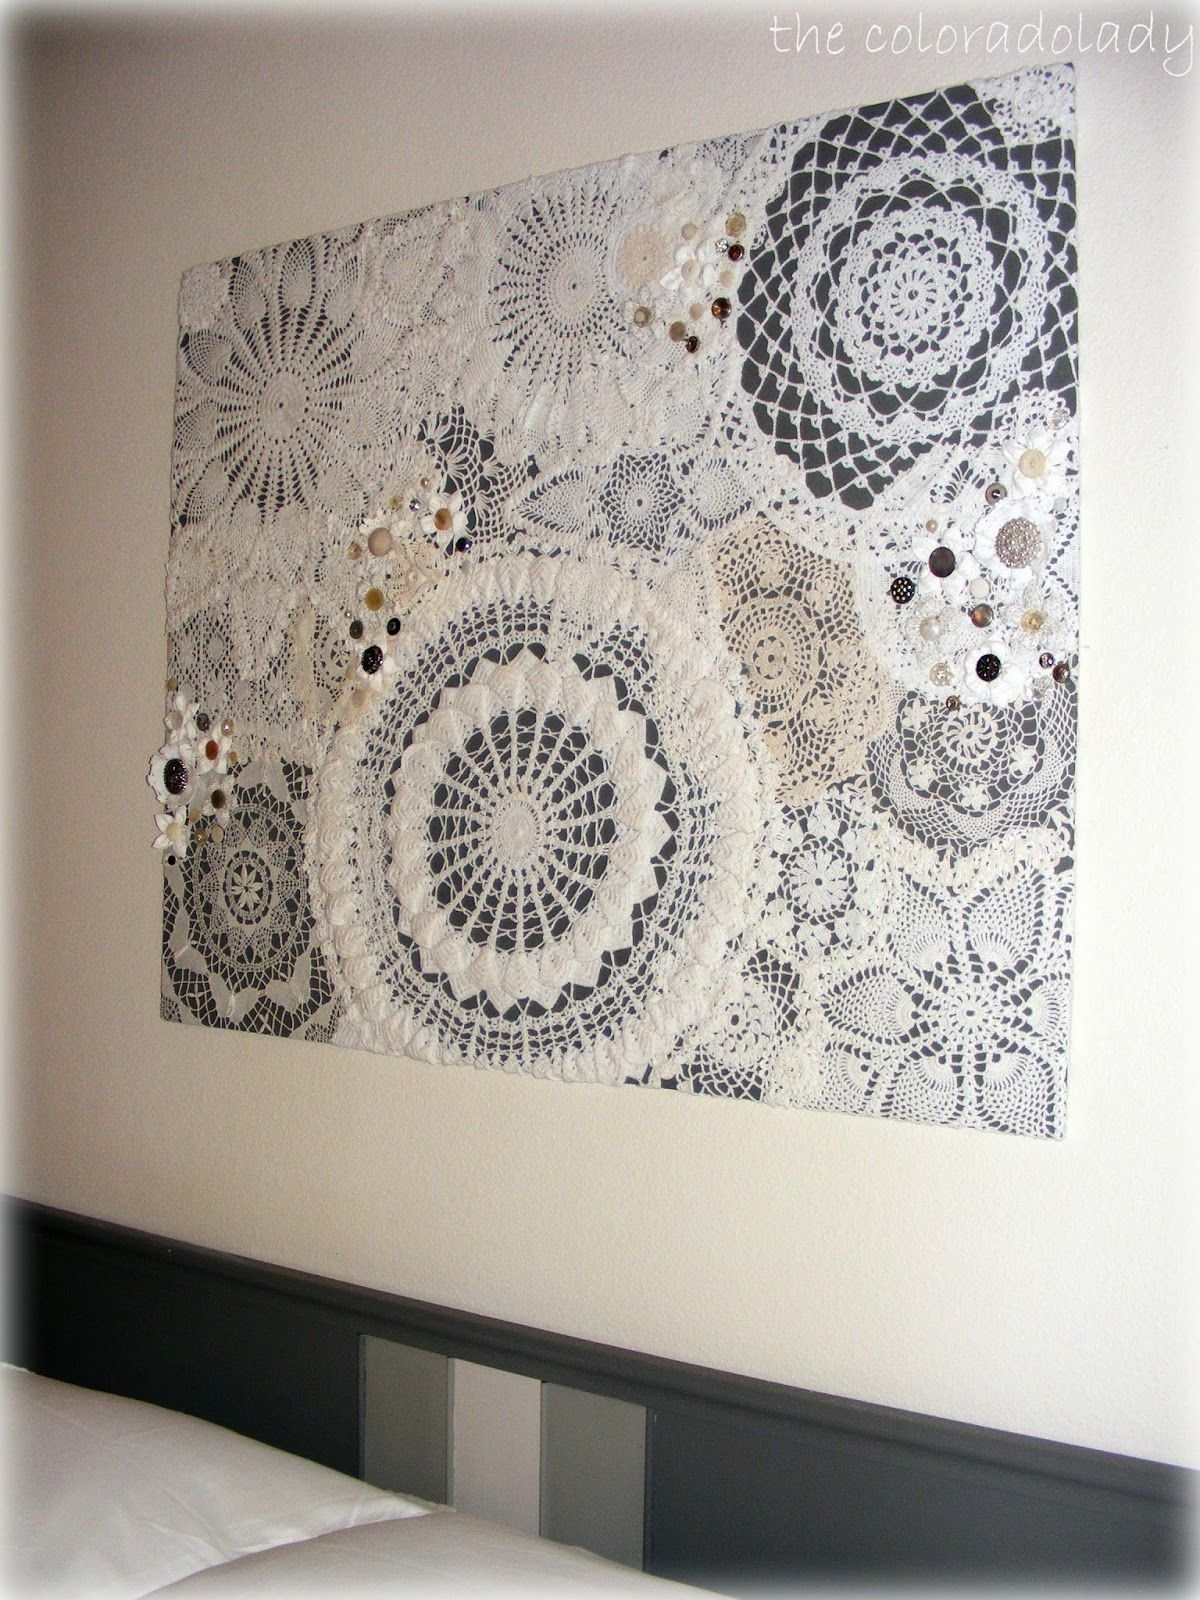 Diy Doily Craft Ideas | My Style | Pinterest | Doilies Crafts, Walls With Regard To Best And Newest Crochet Wall Art (View 5 of 20)